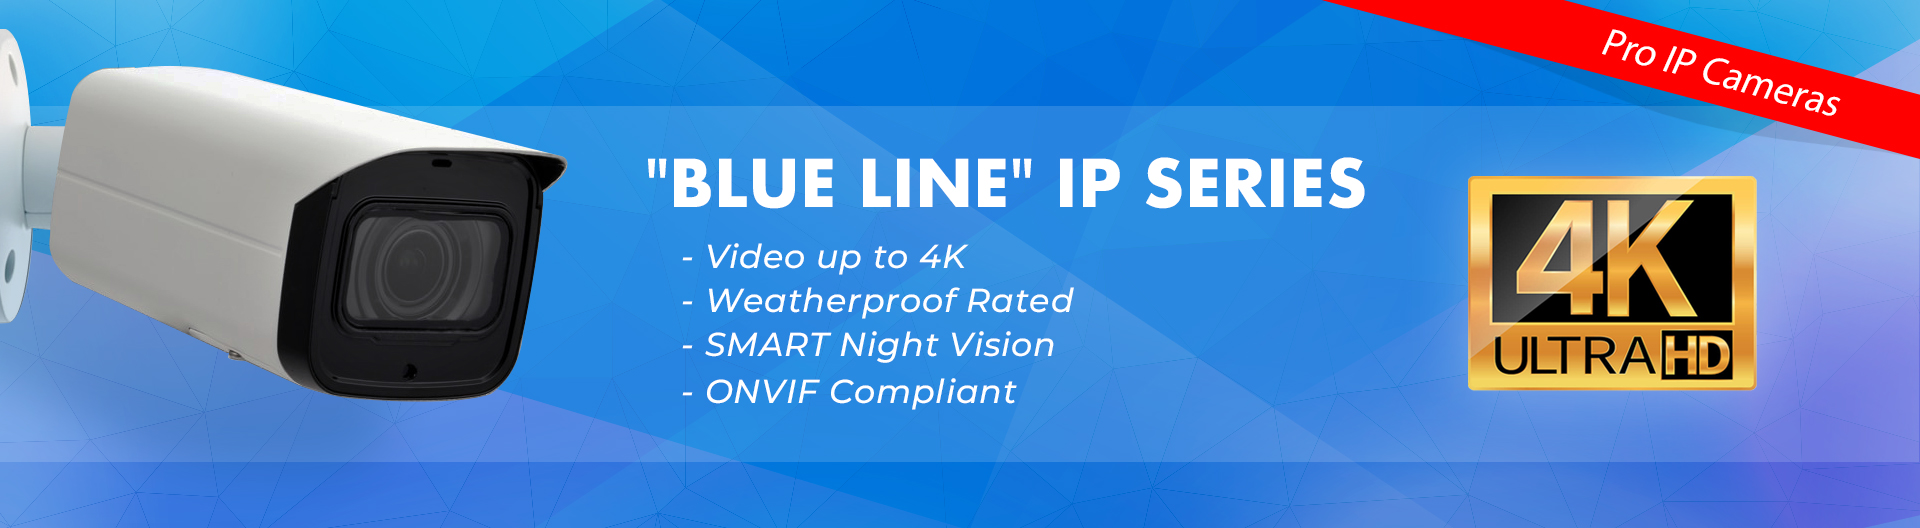 blue-line-series-pro-ip-camera-banner-2-.jpg